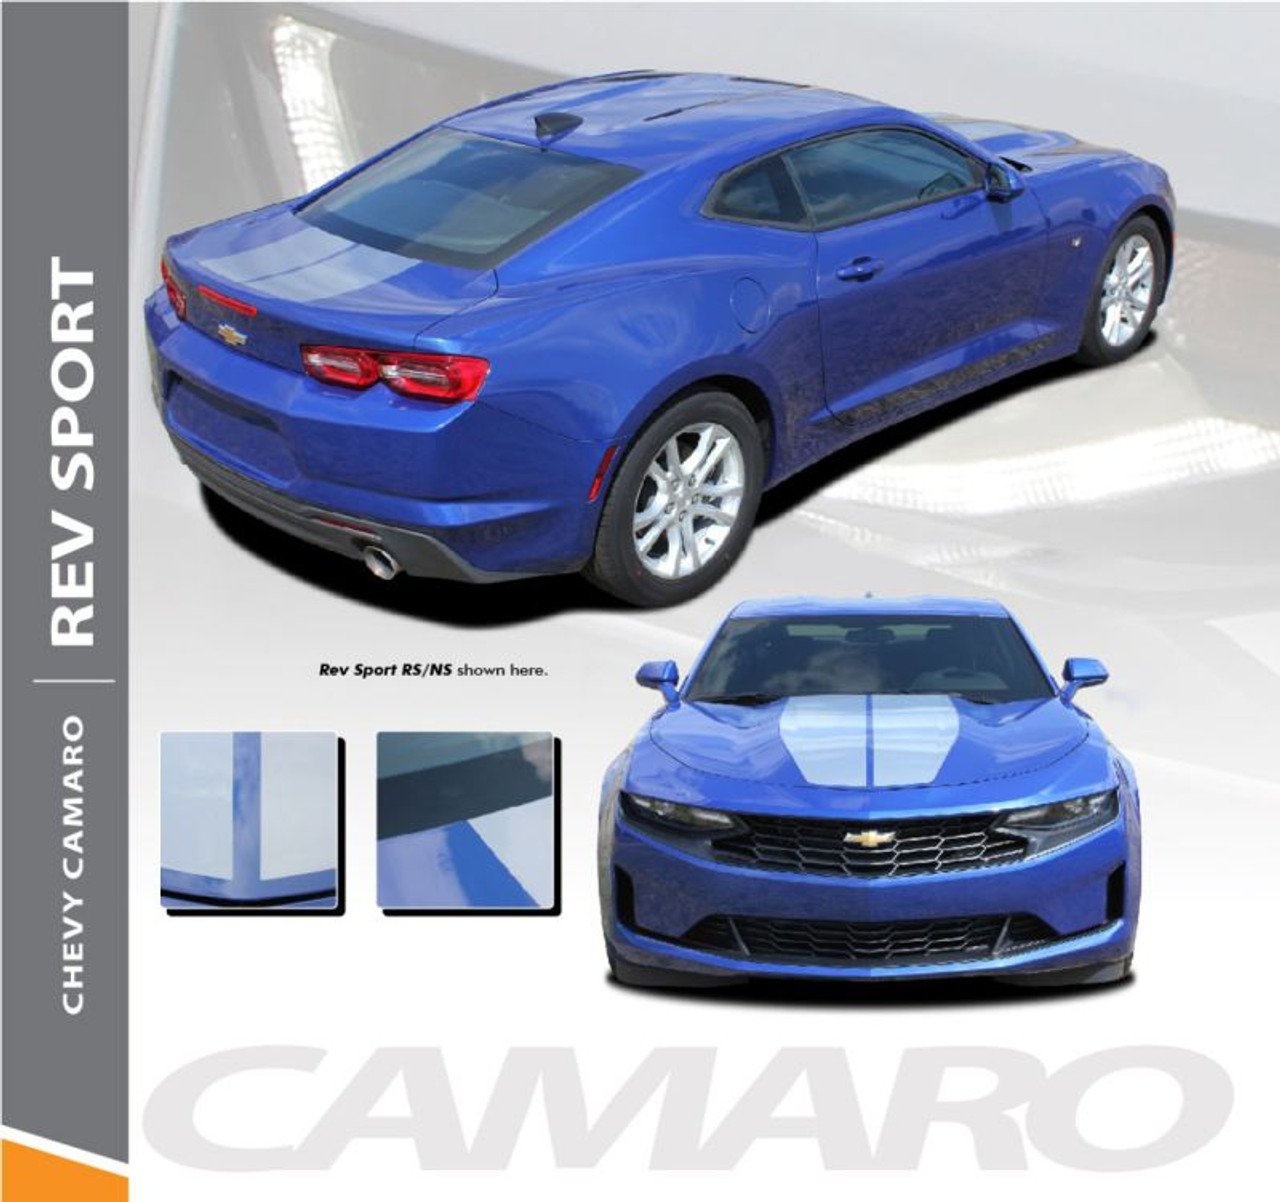 Rev Sport 2019 Camaro Hood Stripes Camaro Hood Decals Vinyl Graphics